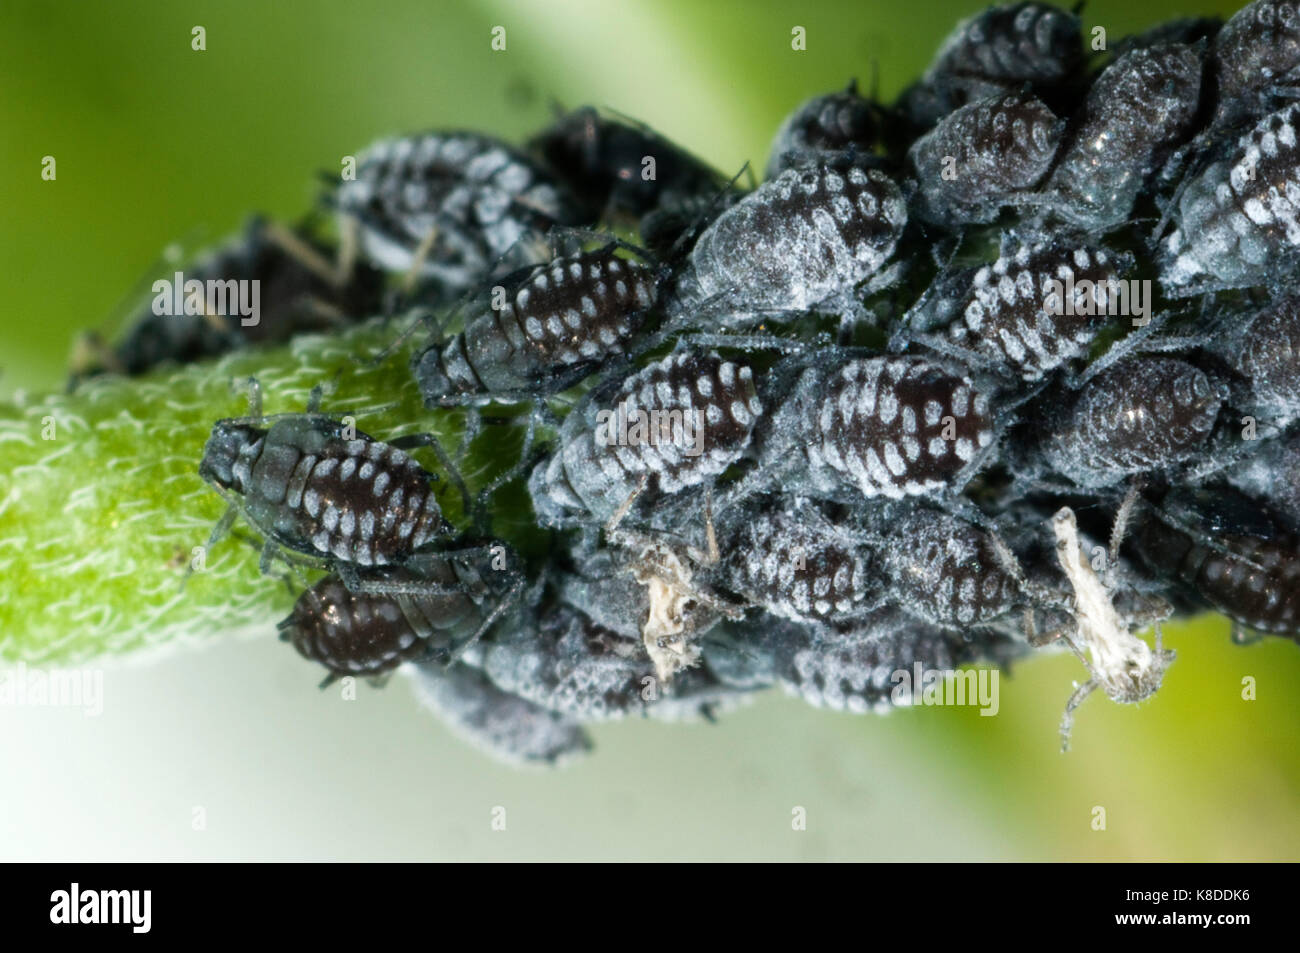 Colony of waxy willowherb aphids, Aphis epilobiaria, on a weed species, broad-leaved willowherb, Epilobium montanum - Stock Image